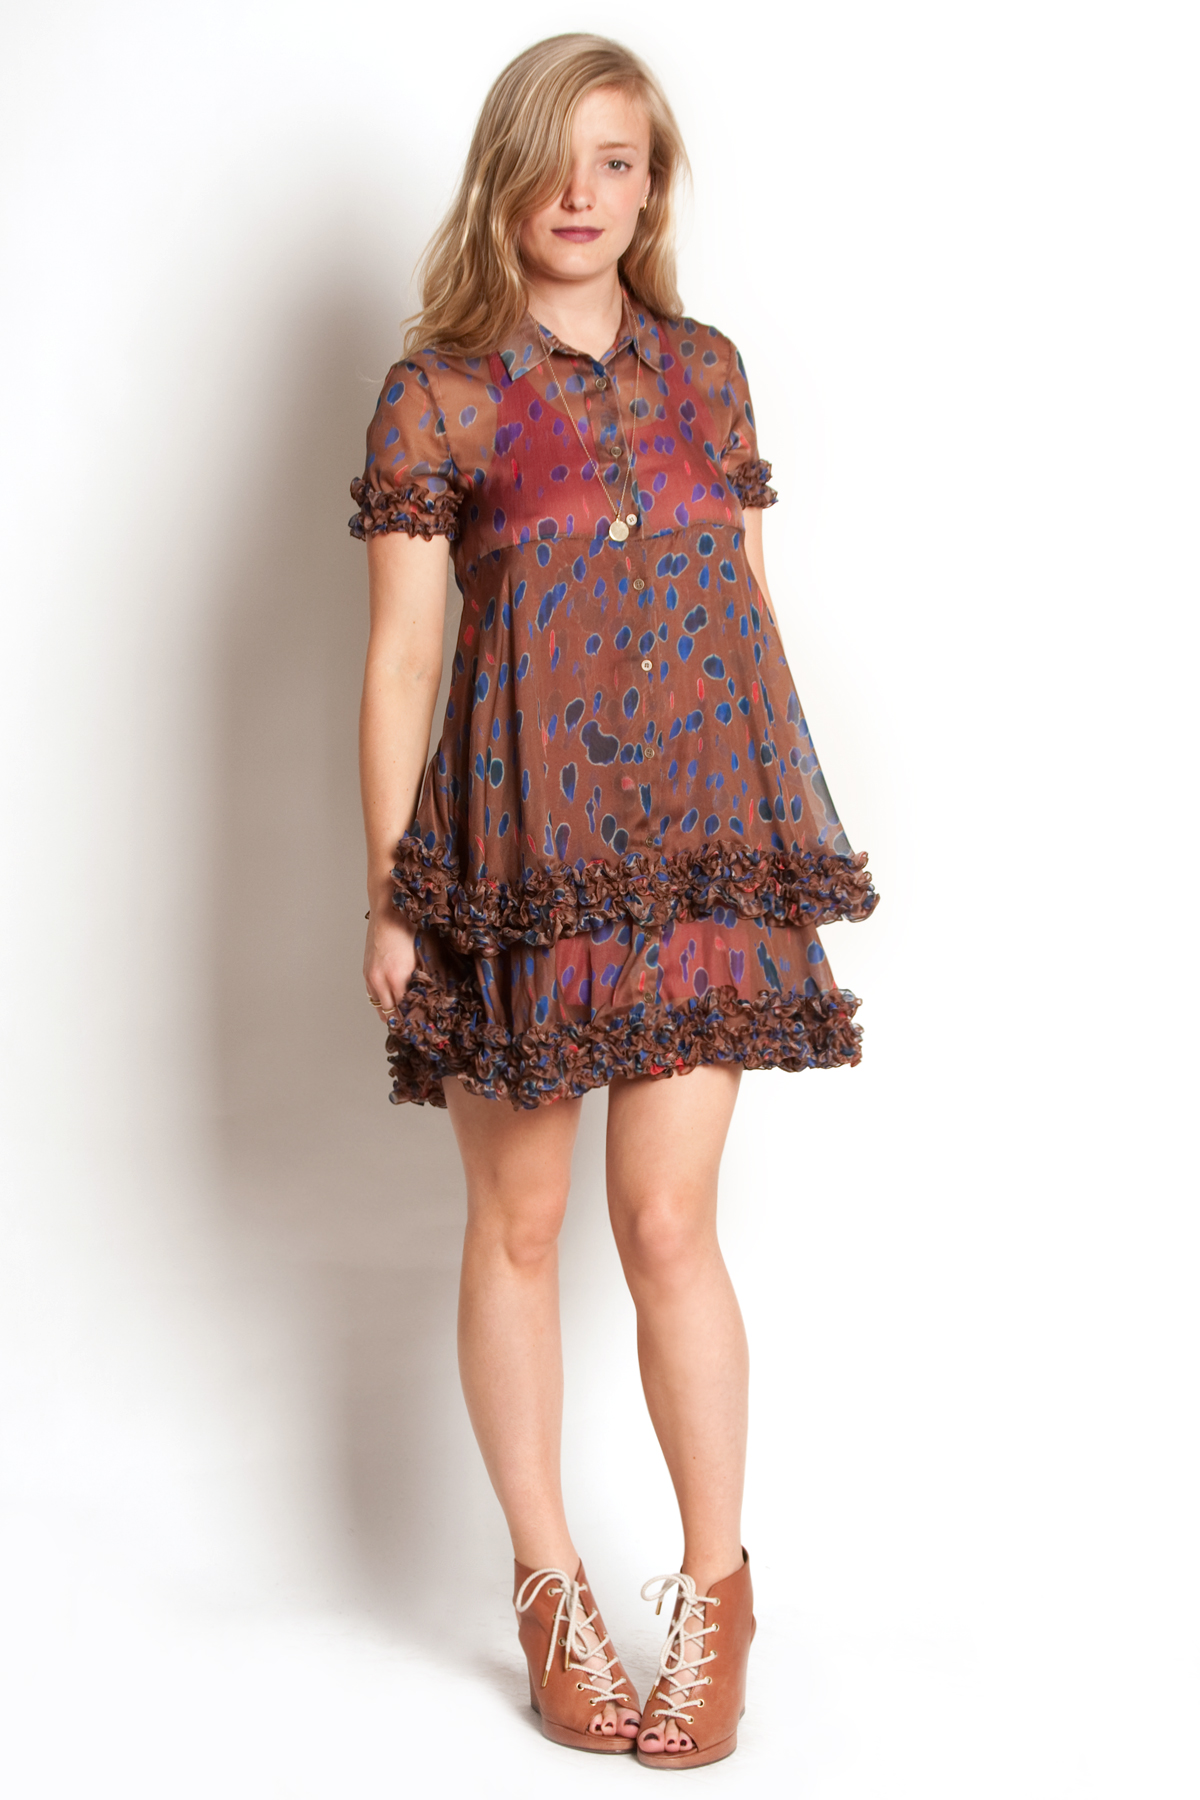 Unique As Implied By The Name, Baby Doll Dresses Are Dress Items For Adult Women Designed To Look Like Cute Baby Doll Clothes Made Popular In The 1960s, This Dress Style Usually Involves Short Dresses With Empire Waists And Billowing